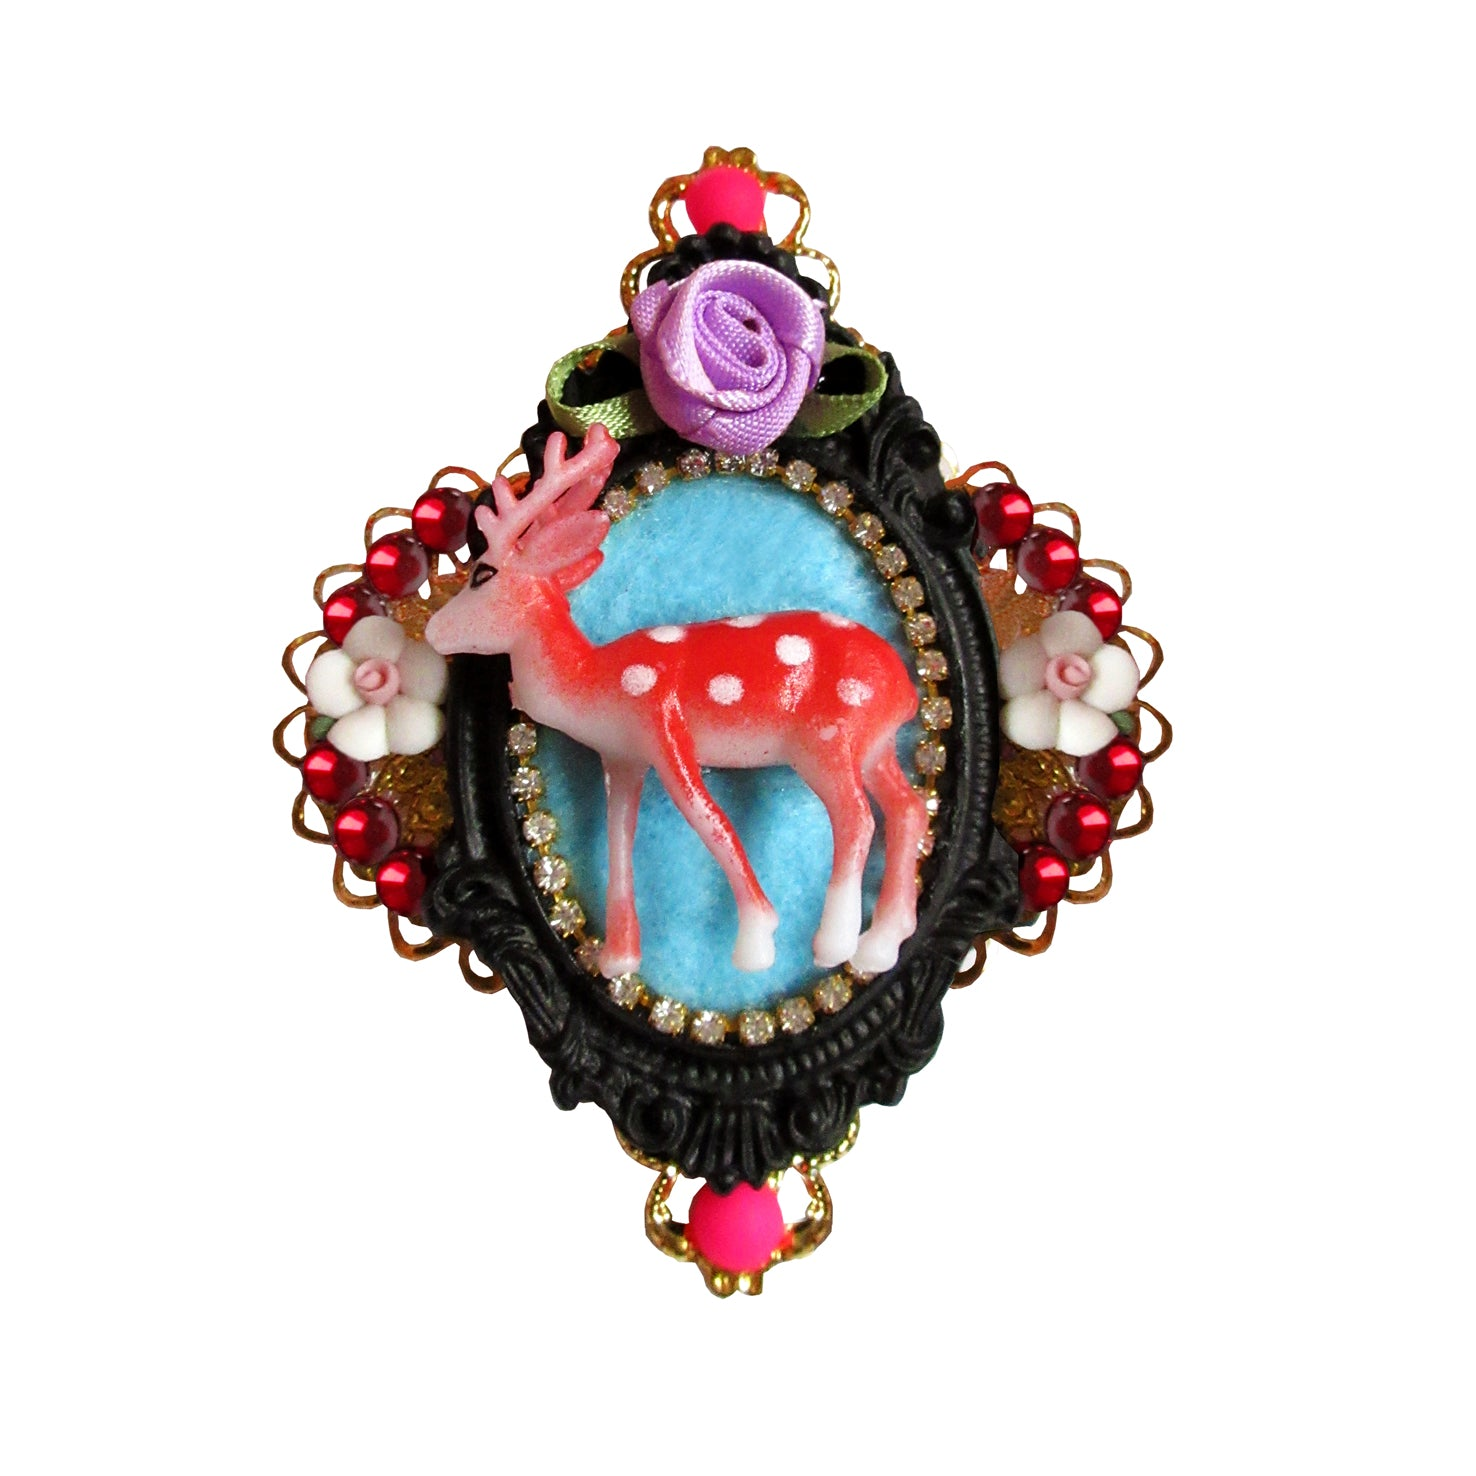 mouchkine jewelry luxury bambi brooch, a haute couture jewel handmade in france